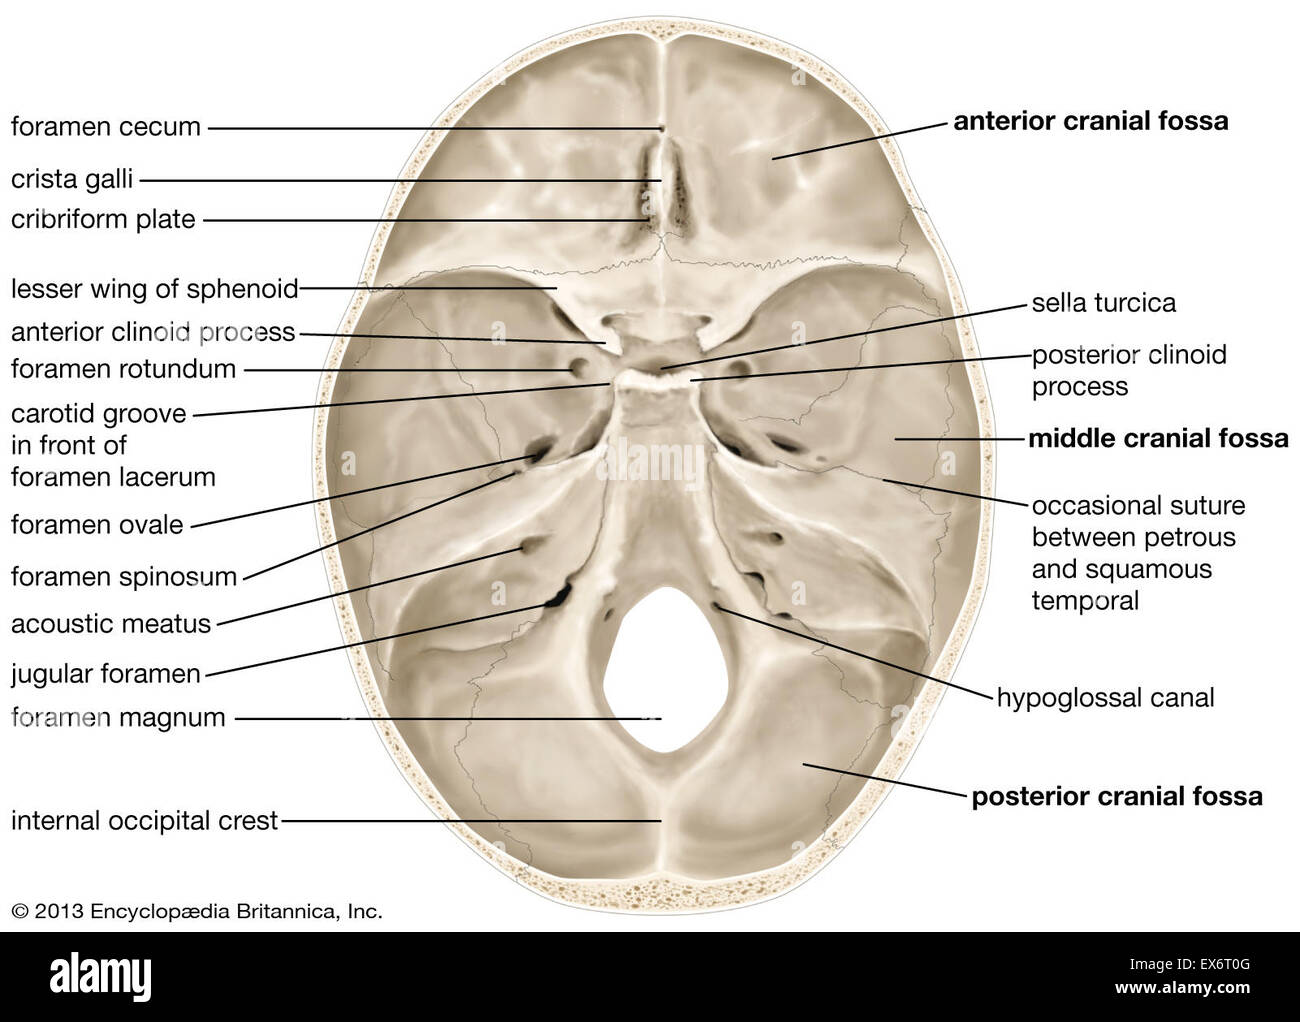 brain cross section diagram project management network examples internal surface of human skull stock photo: 84973072 - alamy